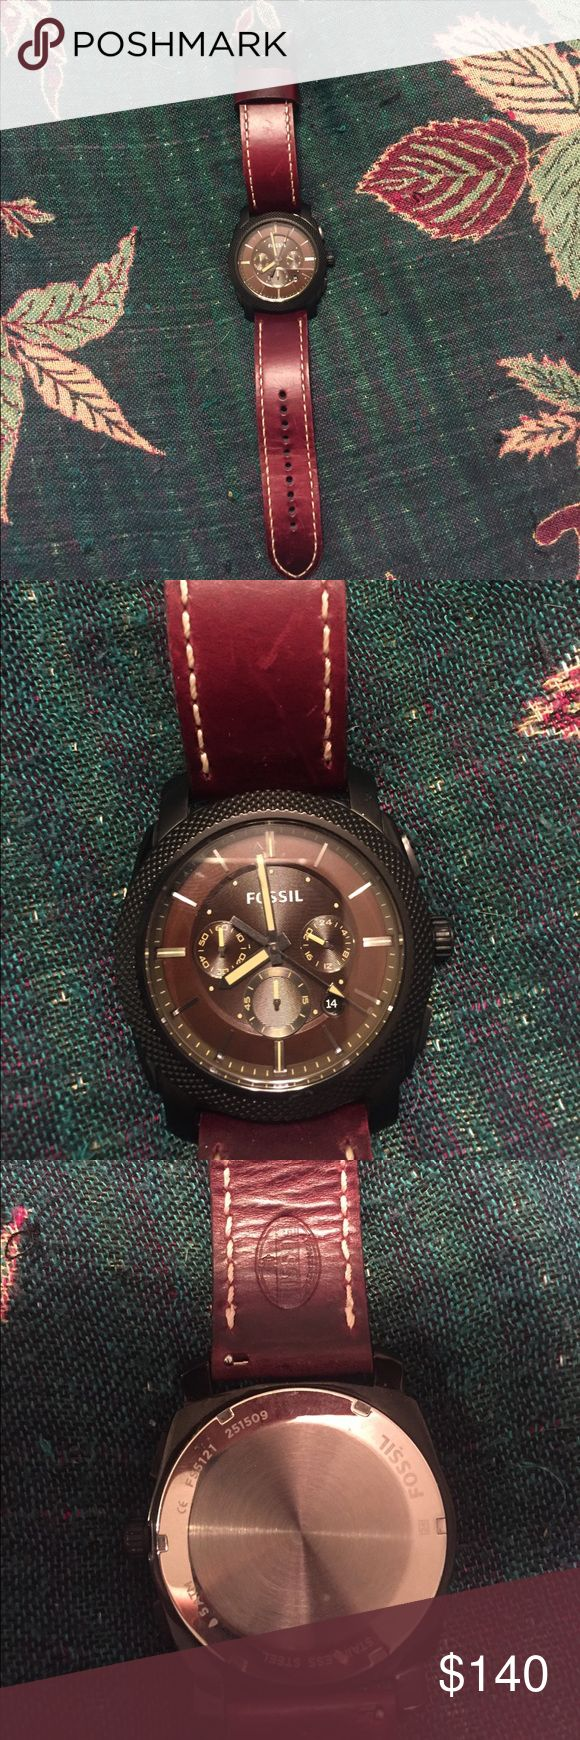 Men's Fossil watch Men's fossil watch. Leather band. Worn only a handful of times. No scratches and keeps time perfectly. Fossil Accessories Watches